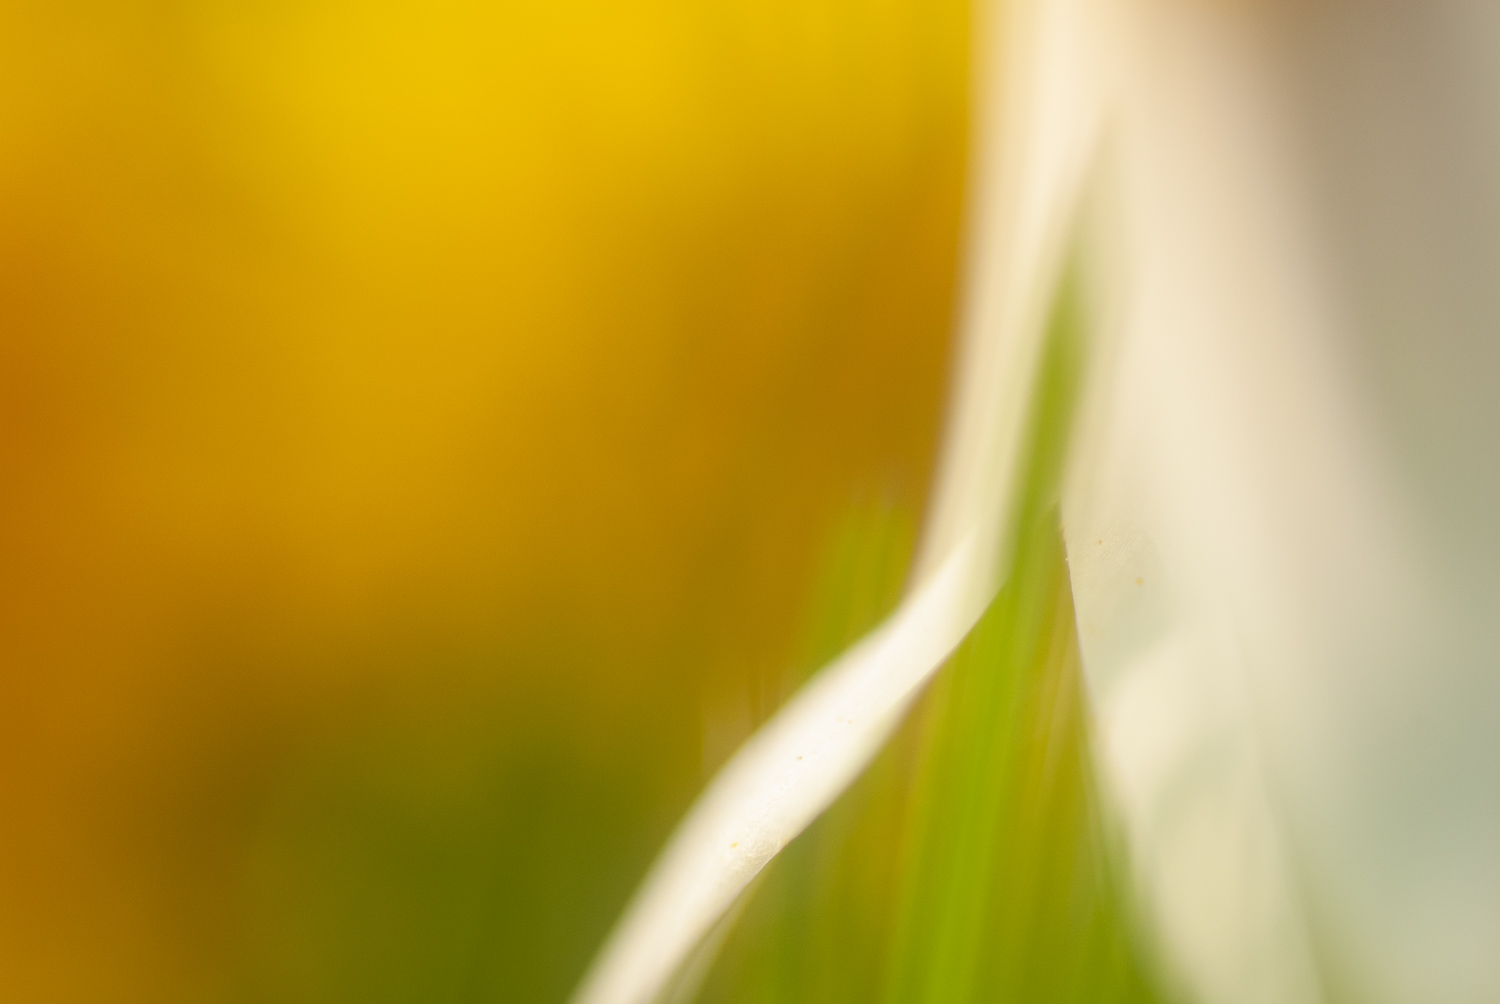 5 Things I Wish I'd Known Before Starting Nature Photography - flower extreme close up abstract